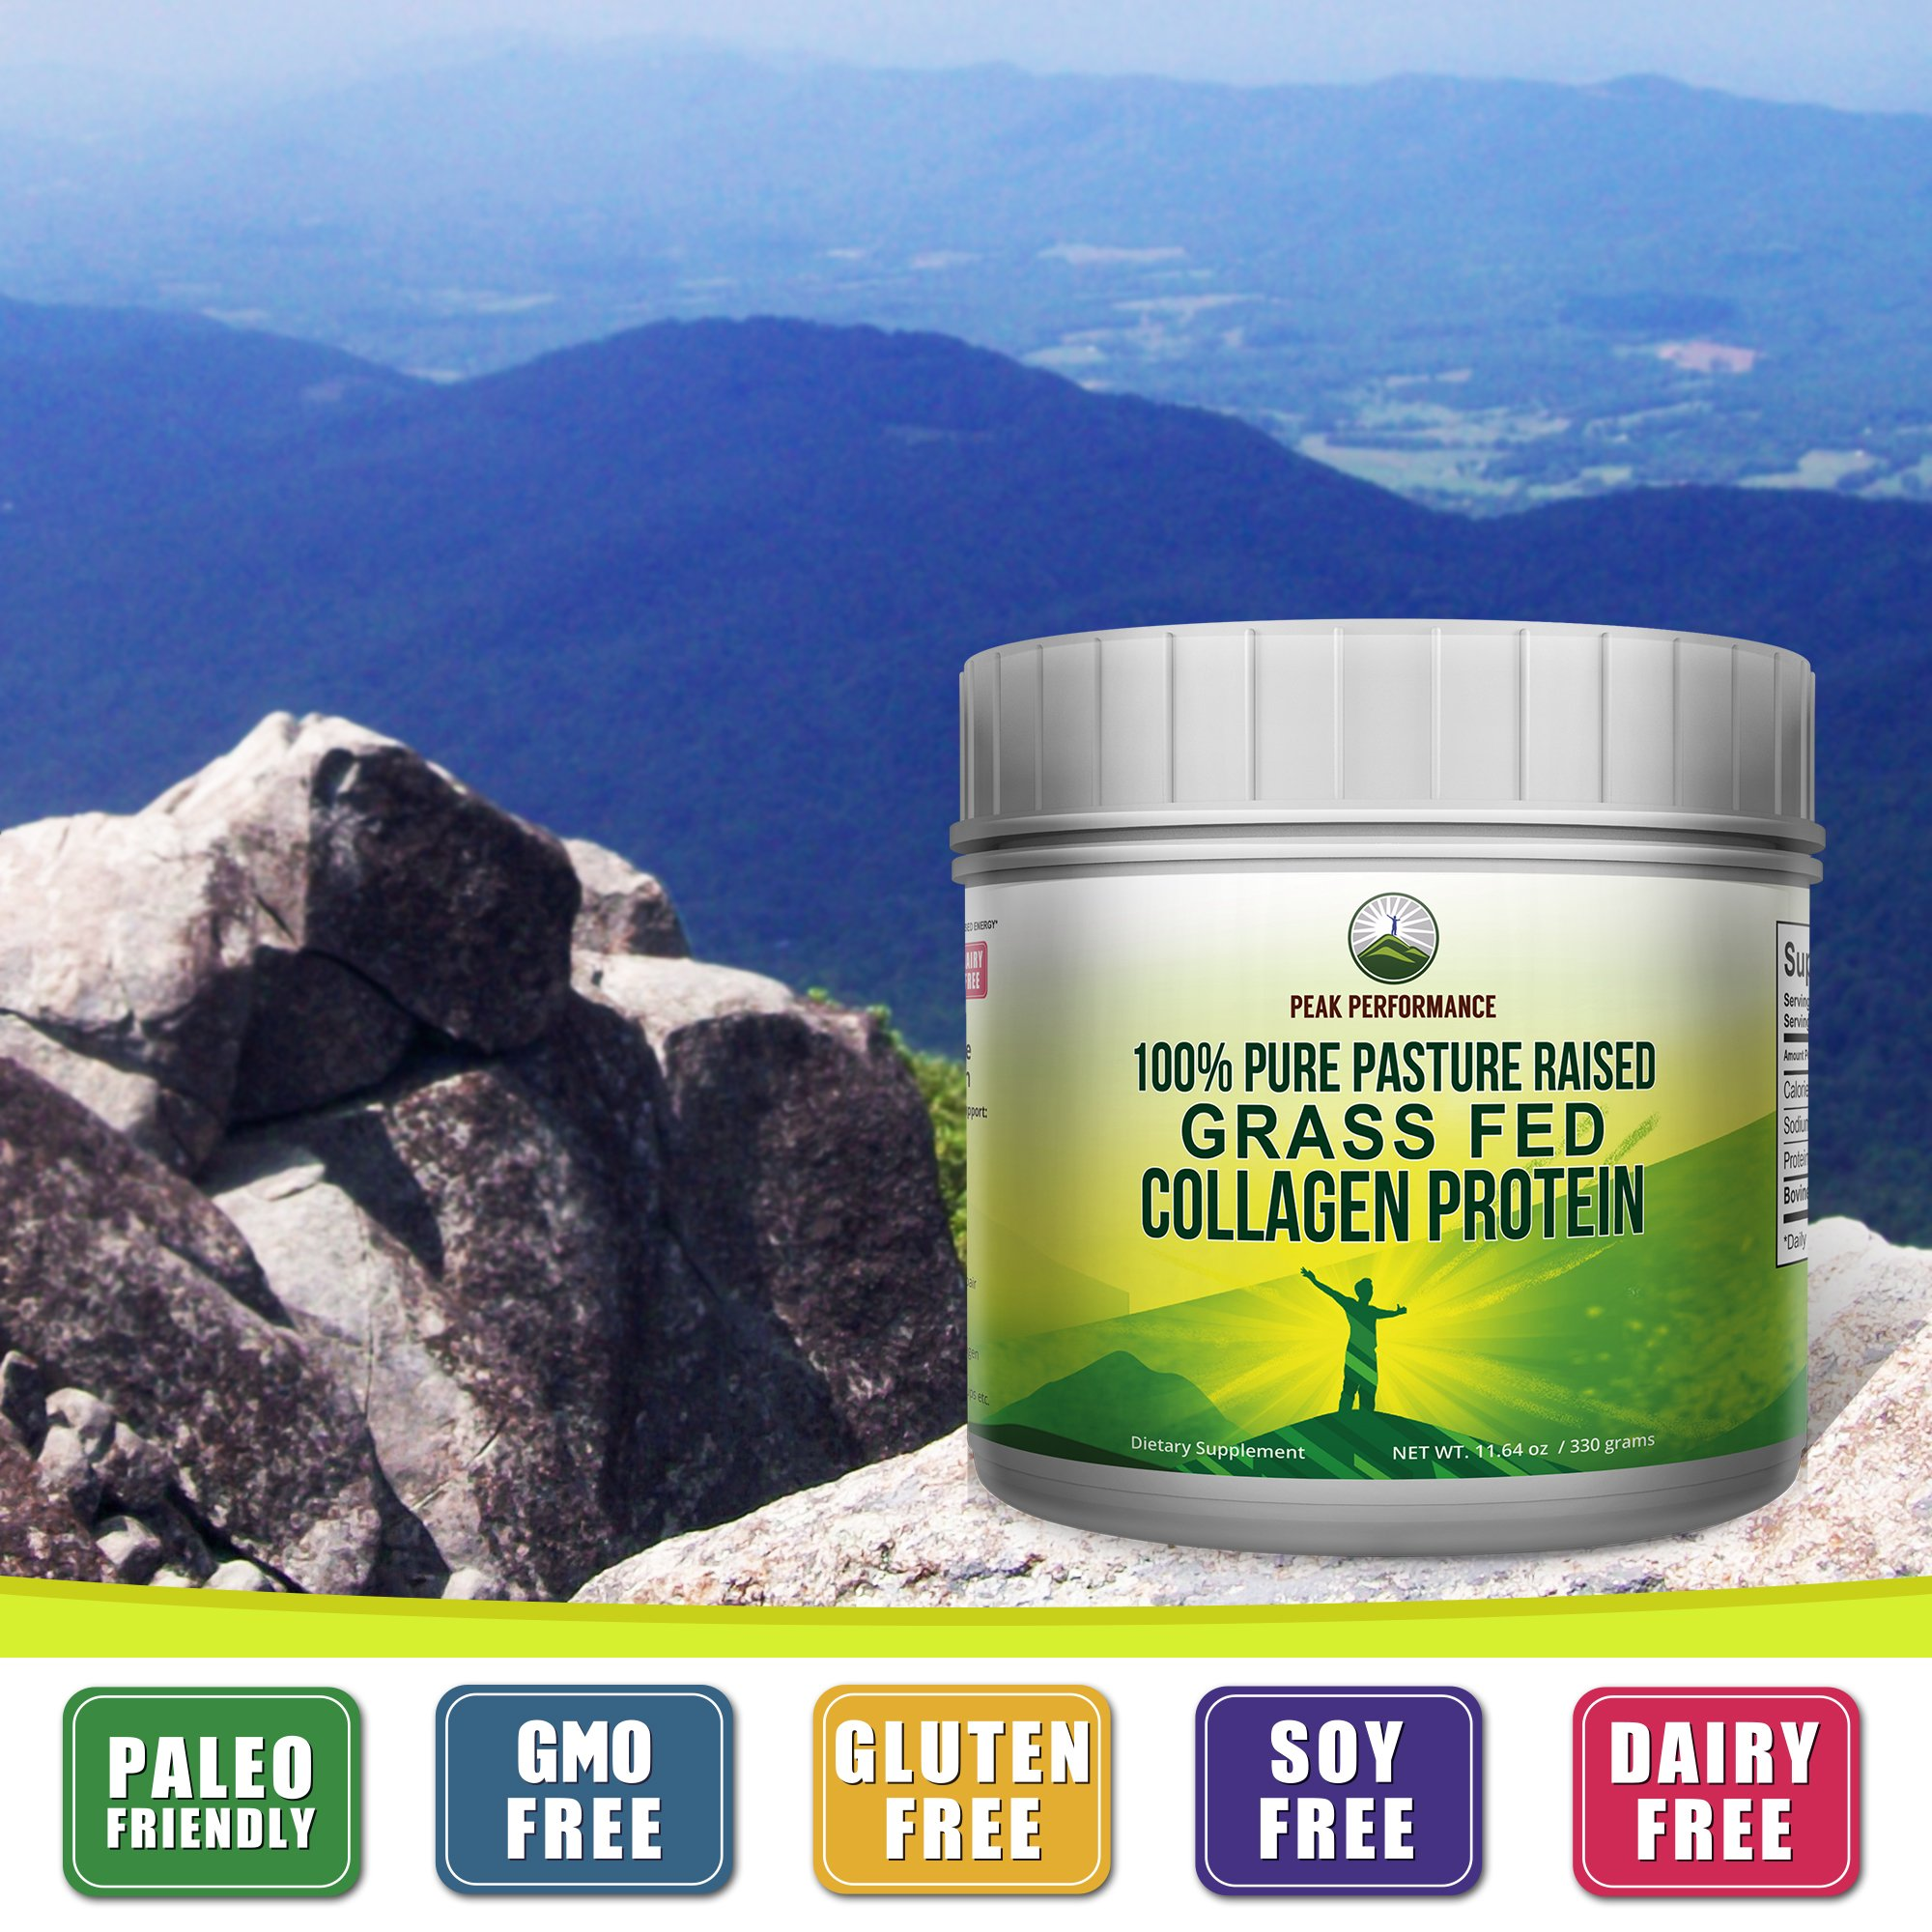 Pure Pasture Raised Grass Fed Hydrolyzed Collagen Protein by Peak Performance. Paleo Friendly, Gluten & Dairy Free Collagen Peptides (Unflavored Collagen) by Peak Performance Coffee (Image #4)